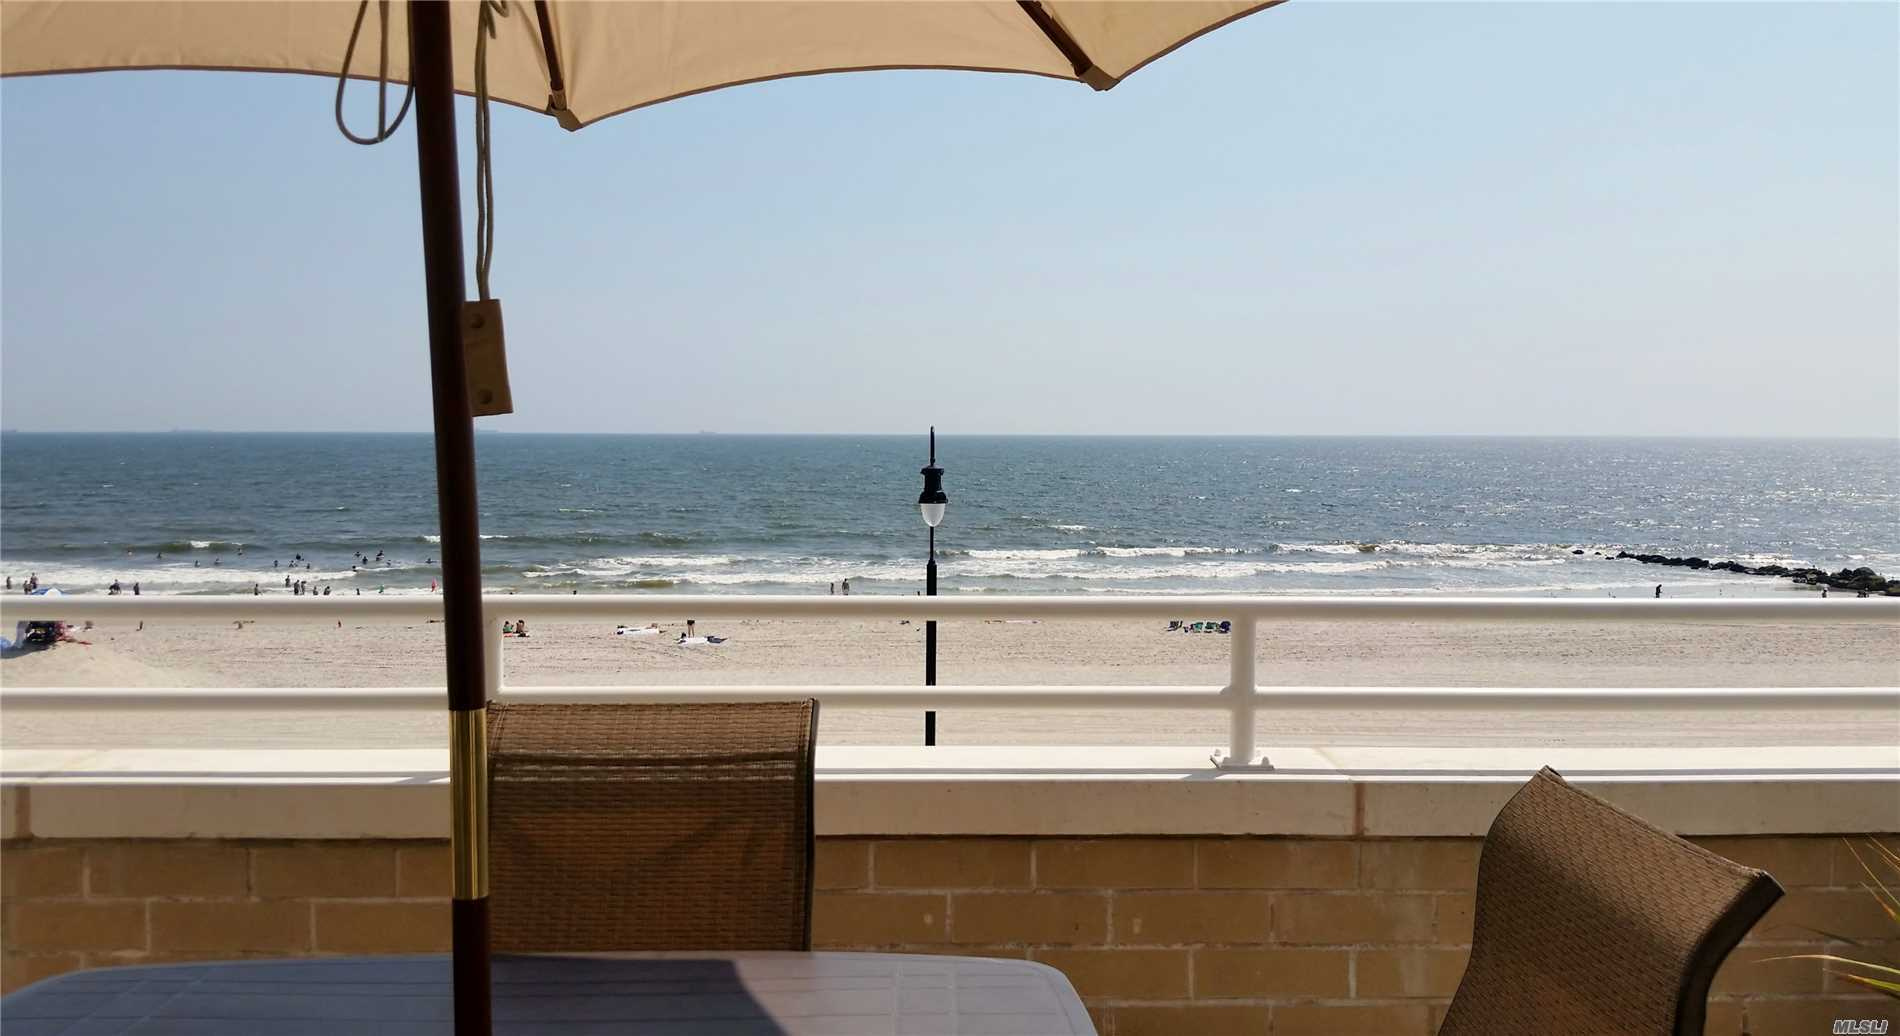 Beautiful 1 Bedroom Oceanfront Condo Unit With Over-Sized Terrace. Large Living Room With Tile Floor, Bedroom With Wood Floors.New Open Kitchen With New Appliances. New bath. Washer And Dryer In The Unit, Pool, Parking.